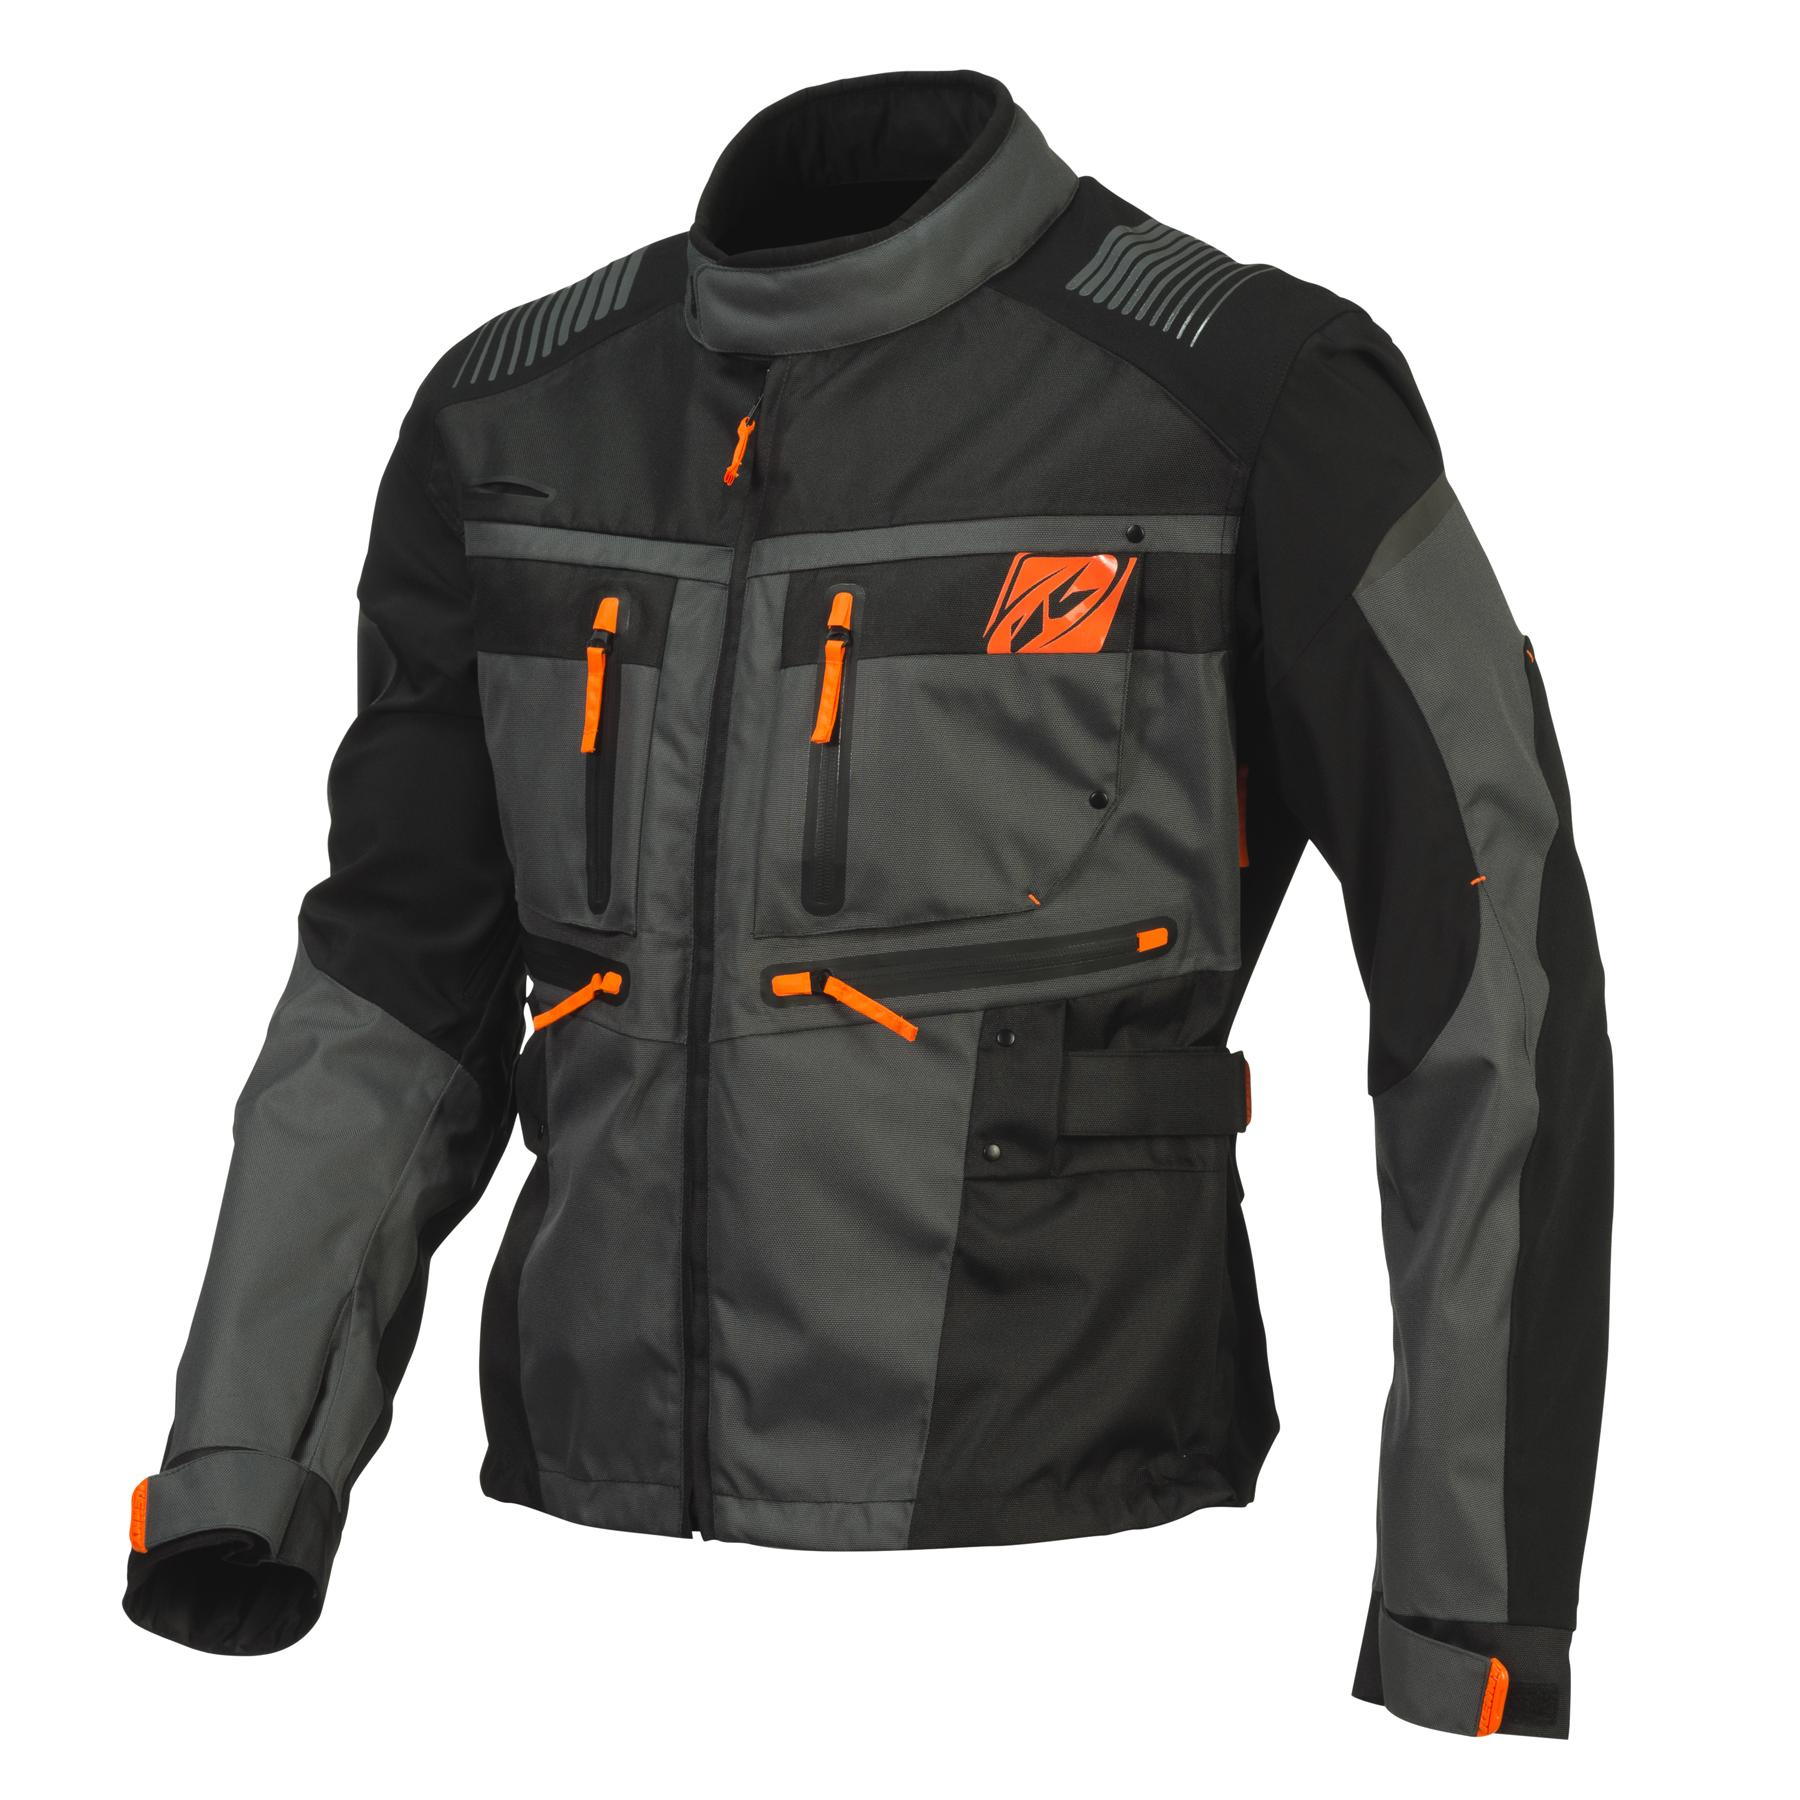 Veste enduro-one Noir//Orange Xl